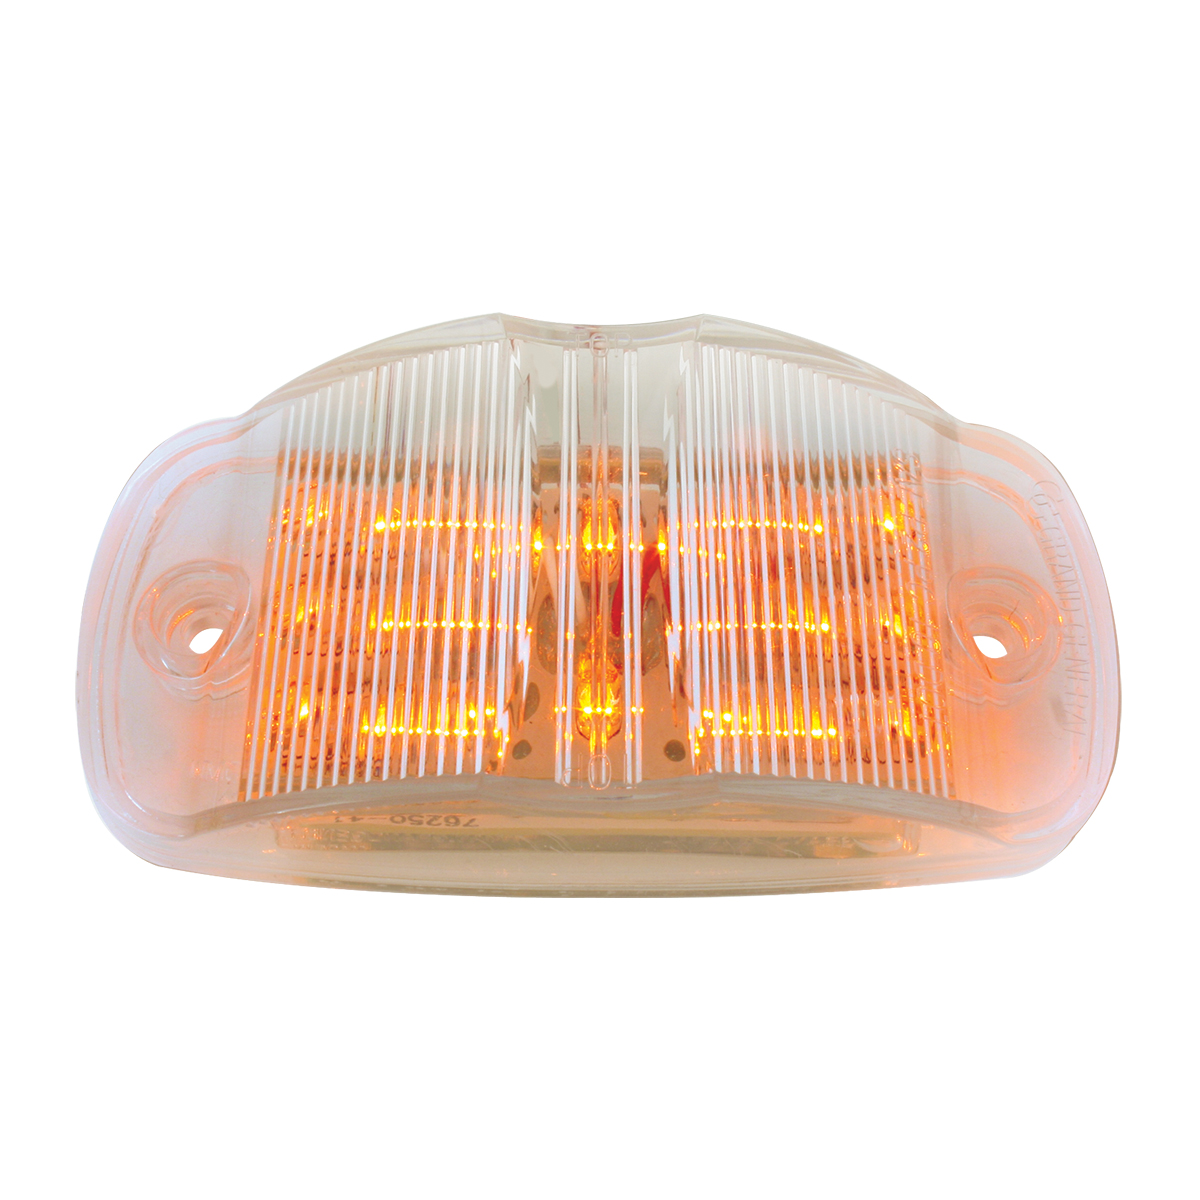 Rectangular Camel Back Wide Angle LED Marker Light in Amber/Clear